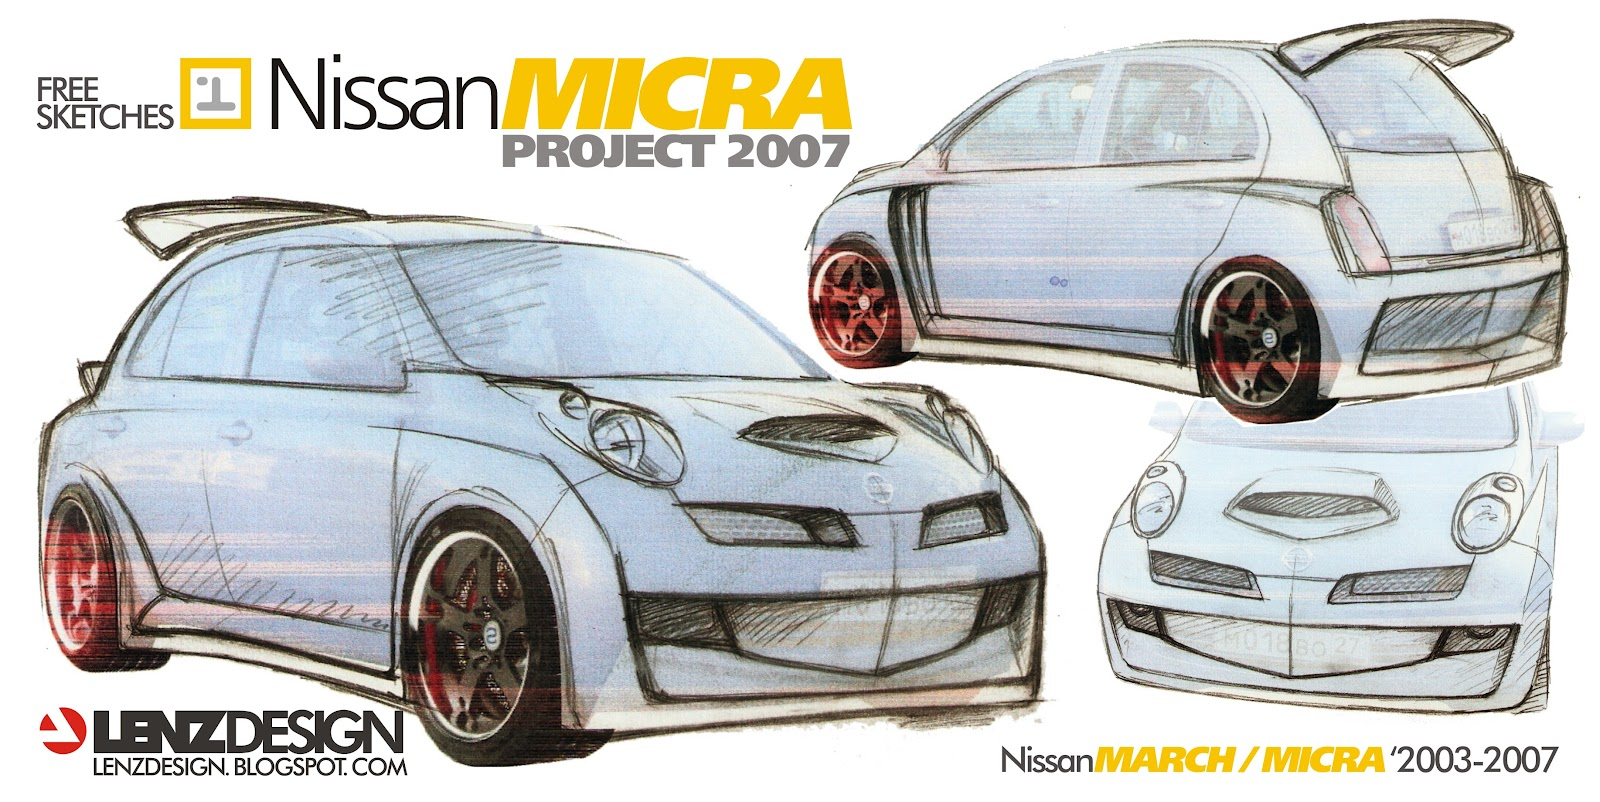 nissan micra tuning concept 2007 by lenzdesign. Black Bedroom Furniture Sets. Home Design Ideas